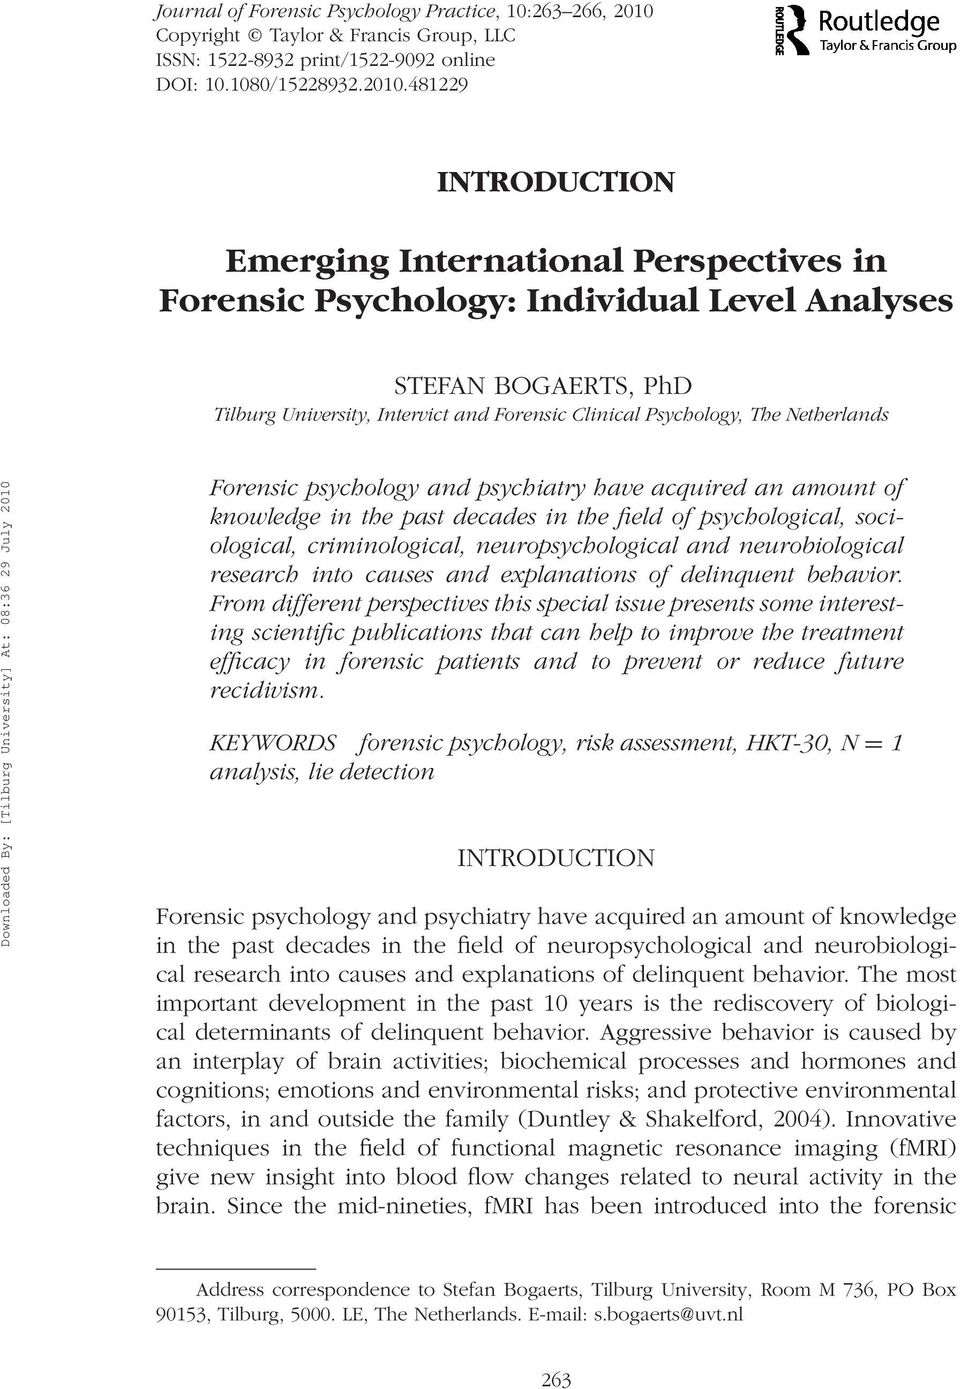 481229 INTRODUCTION Emerging International Perspectives in Forensic Psychology: Individual Level Analyses STEFAN BOGAERTS, PhD Tilburg University, Intervict and Forensic Clinical Psychology, The